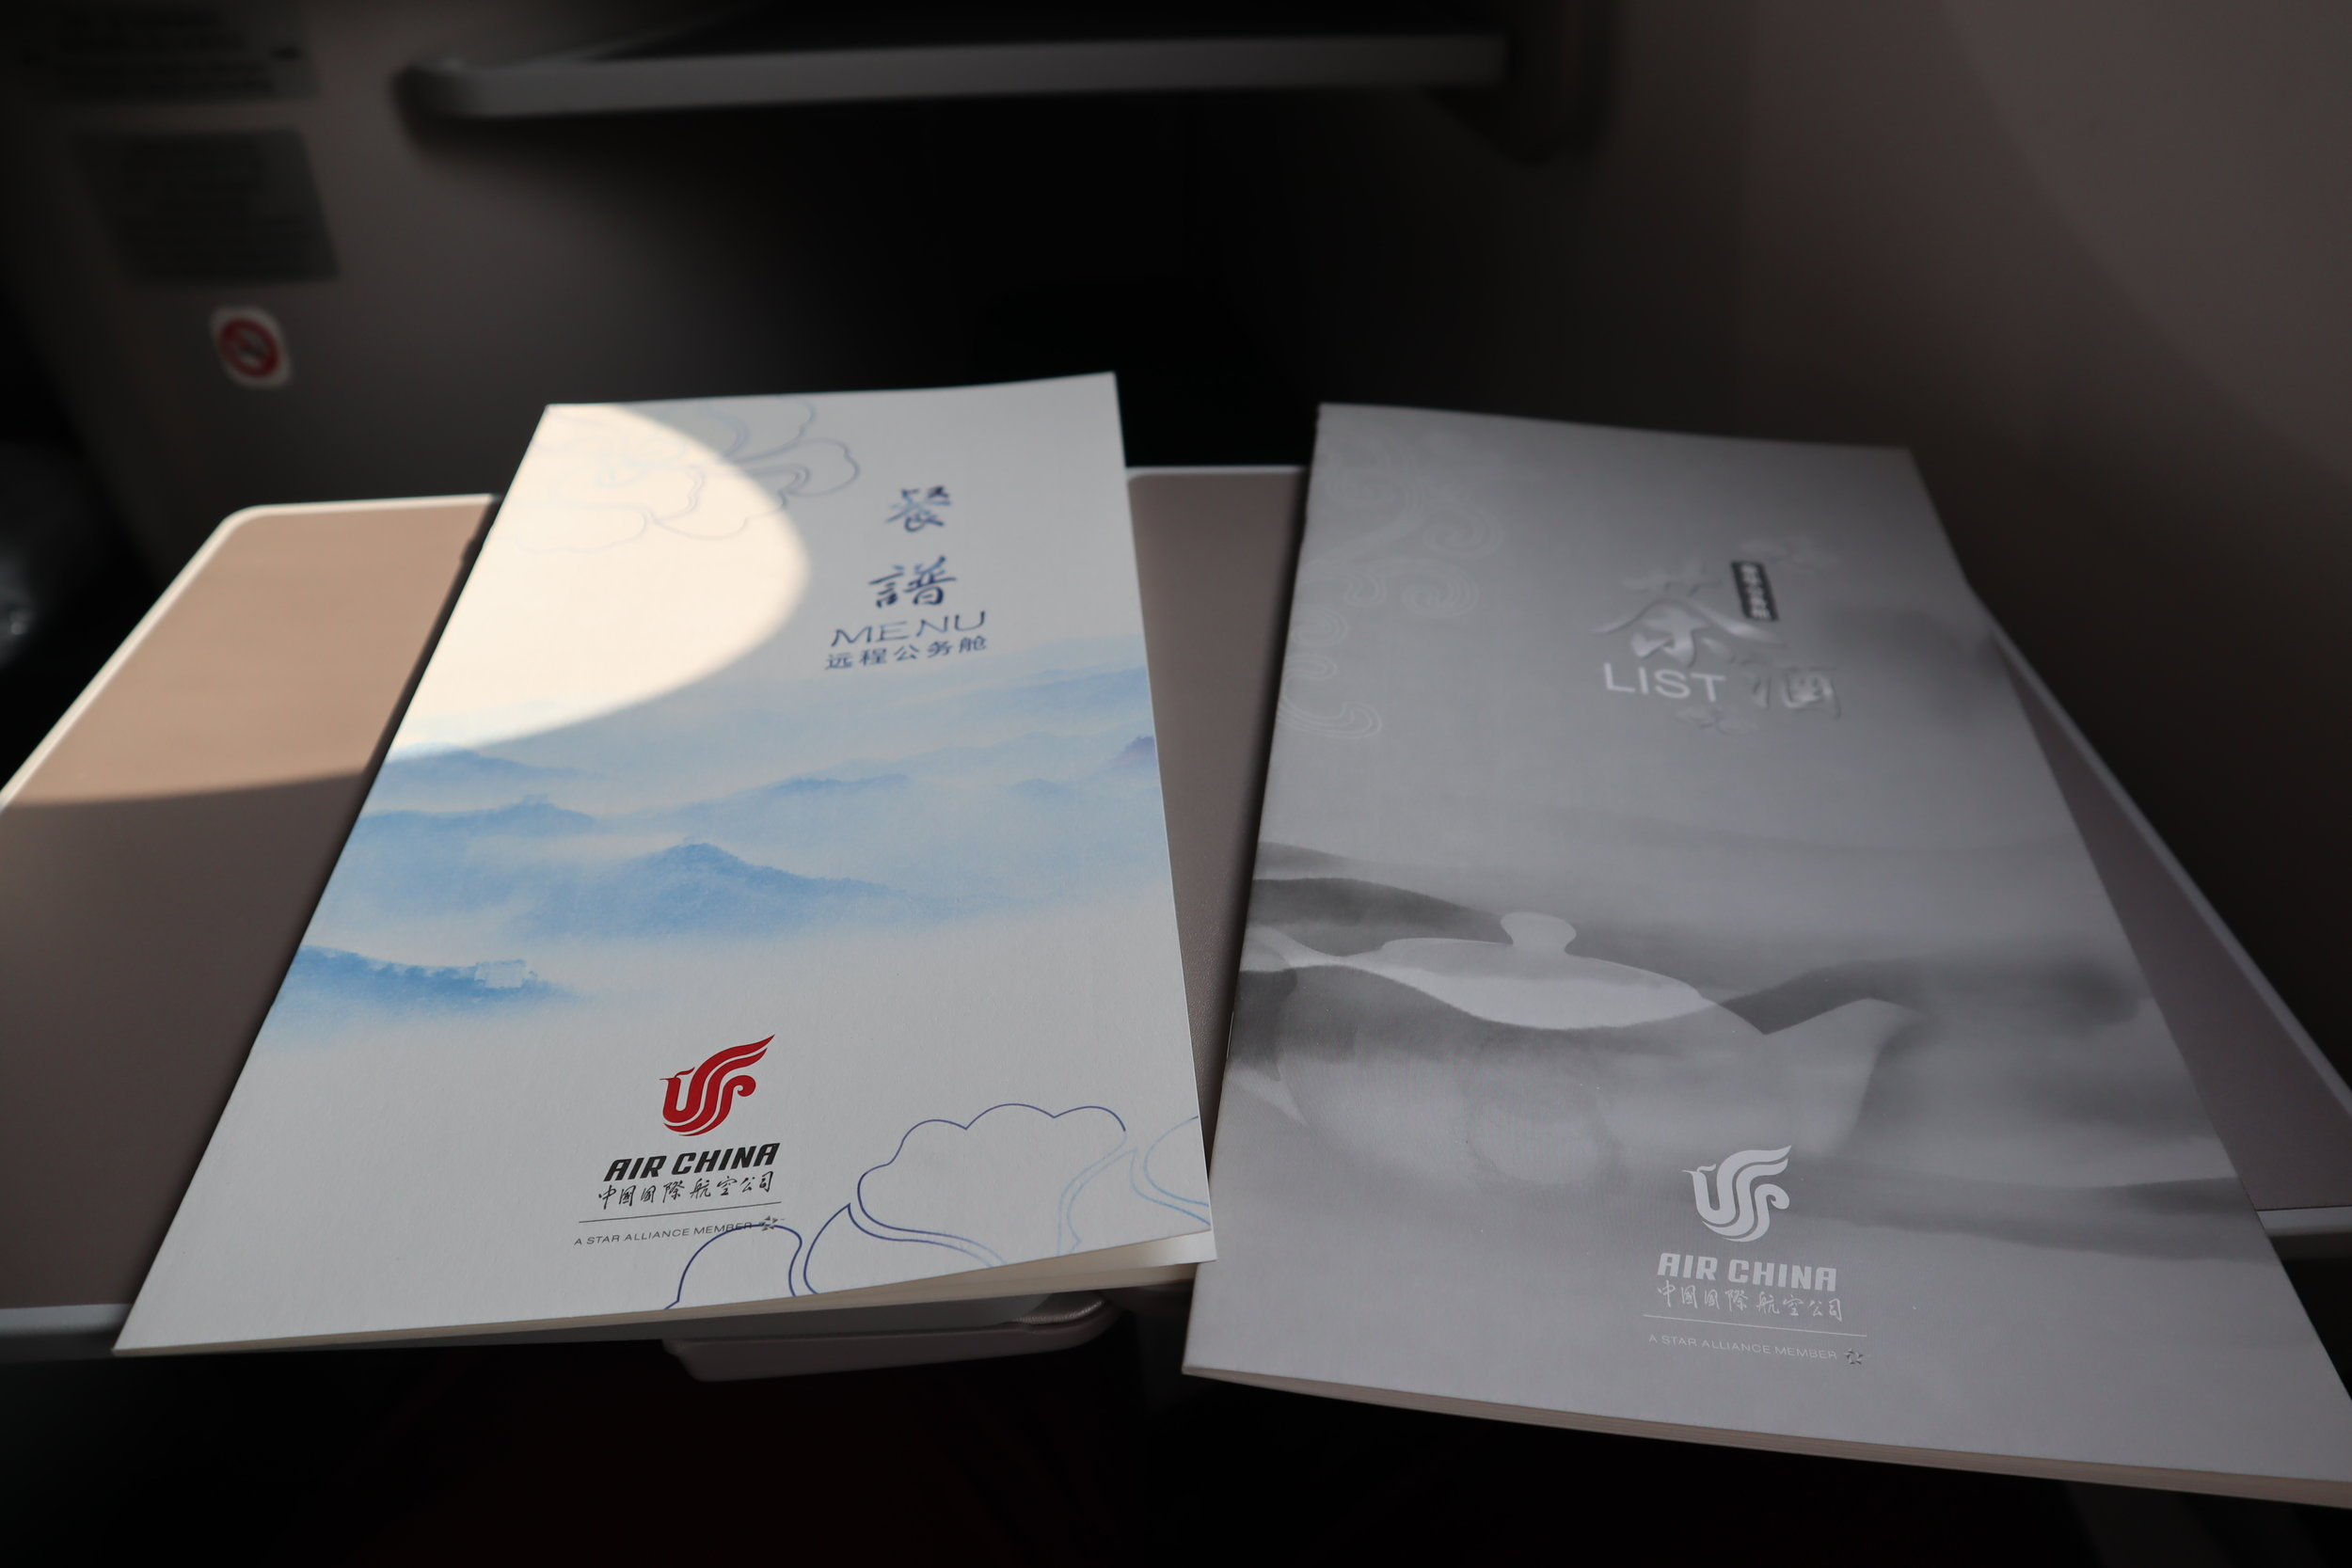 Air China business class – Menu and wine list